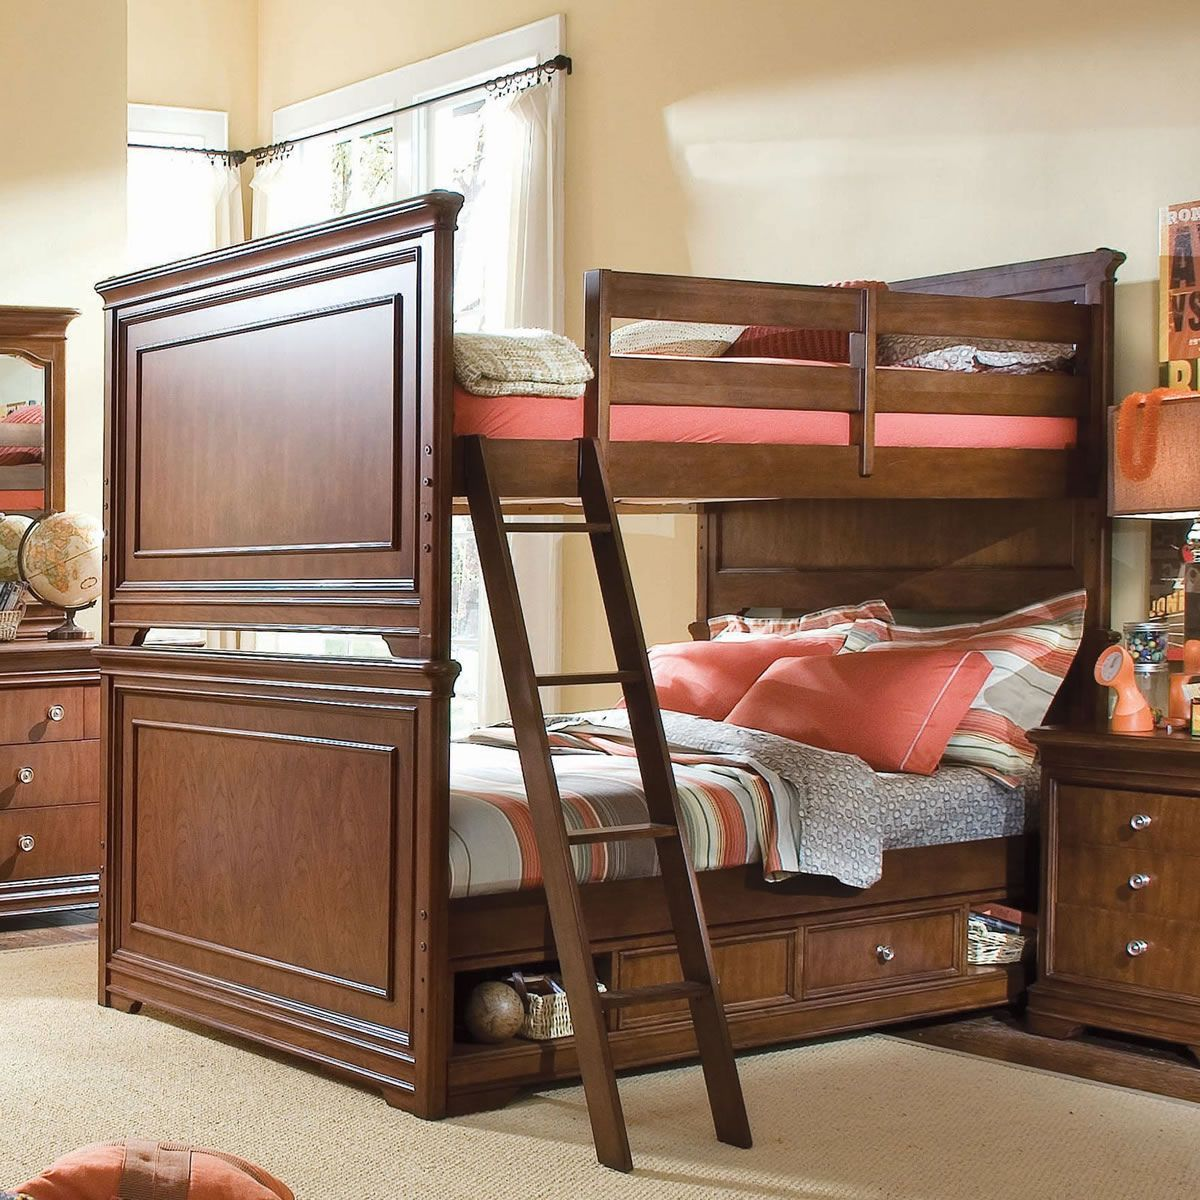 Wood Bunk Beds Full Over Full Best Interior Paint Brands Check